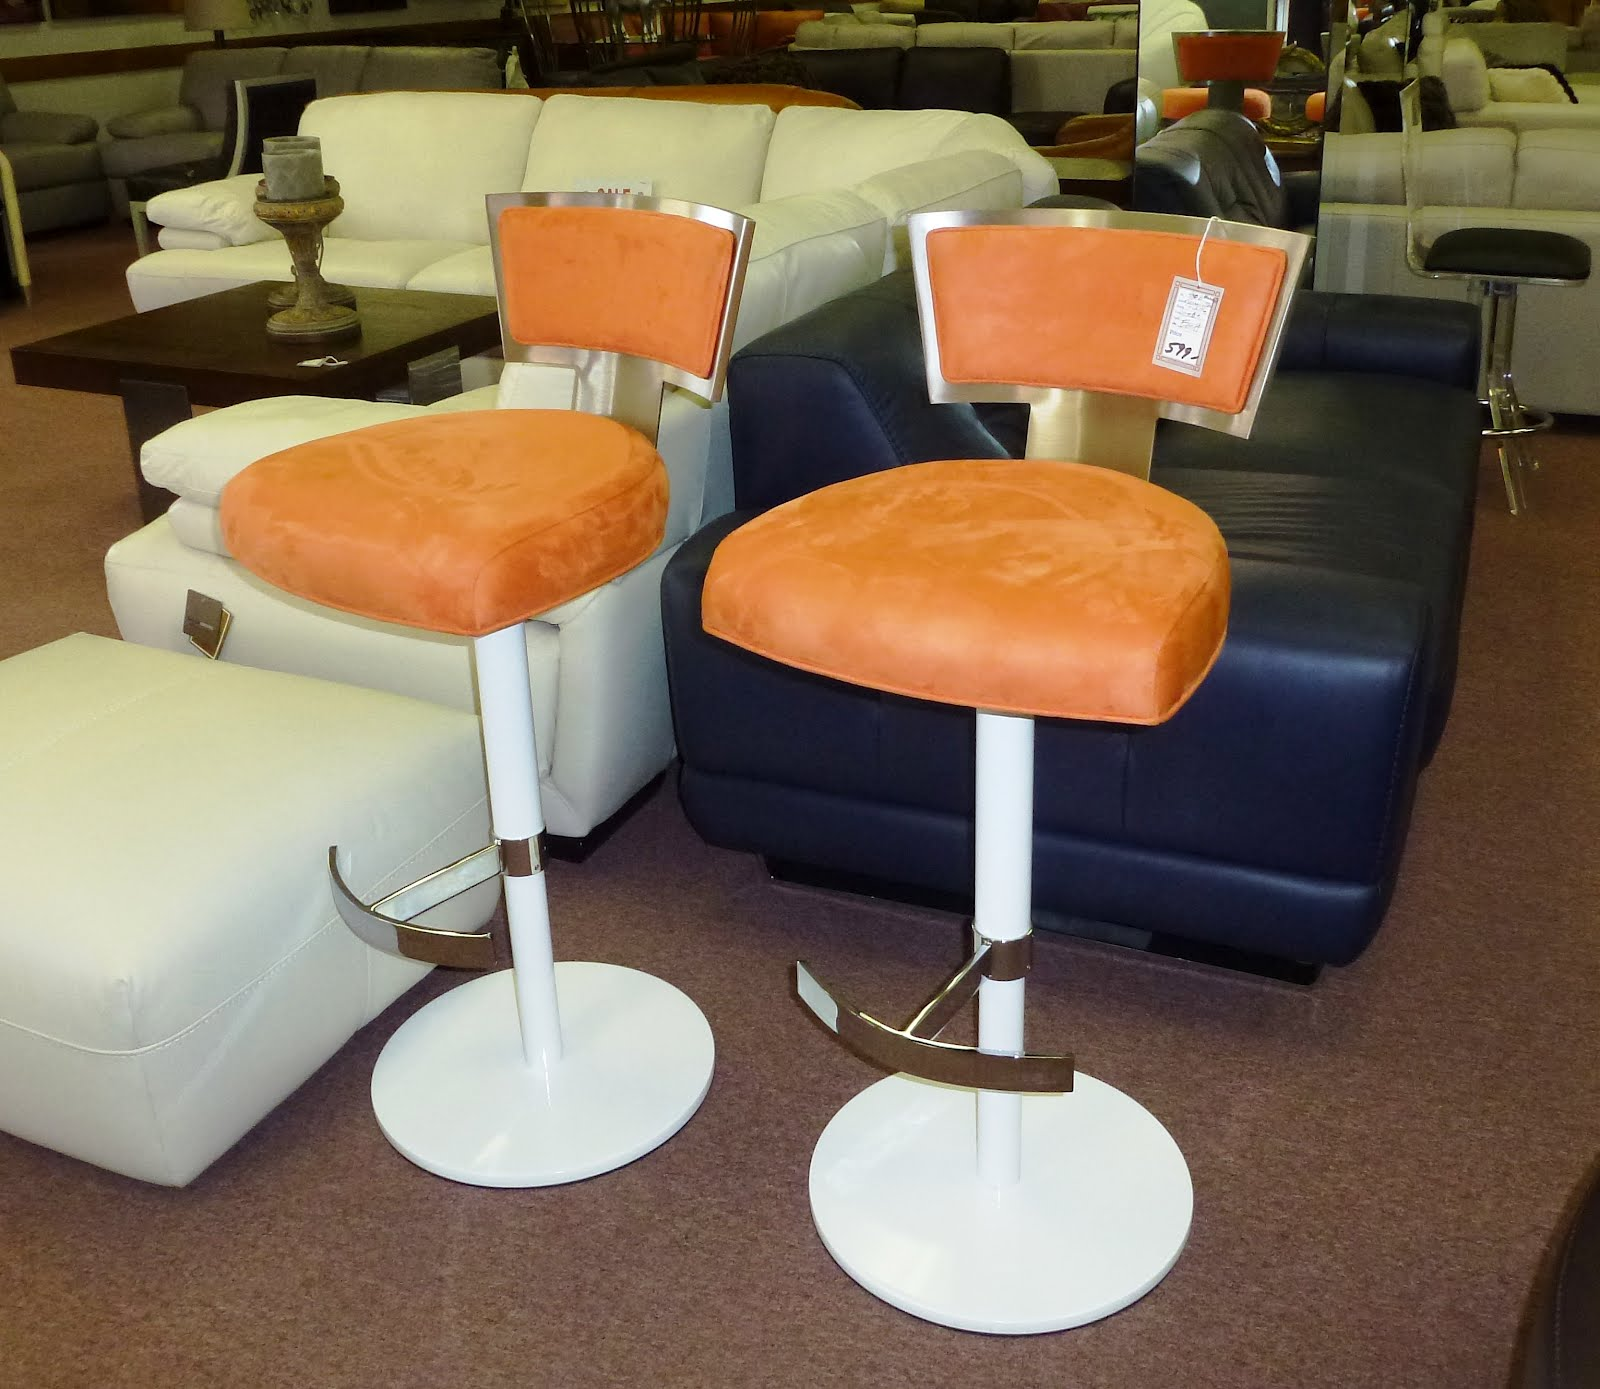 By dutchmen 1400rb mini for sale in burleigh falls ontario for Labor day couch sale